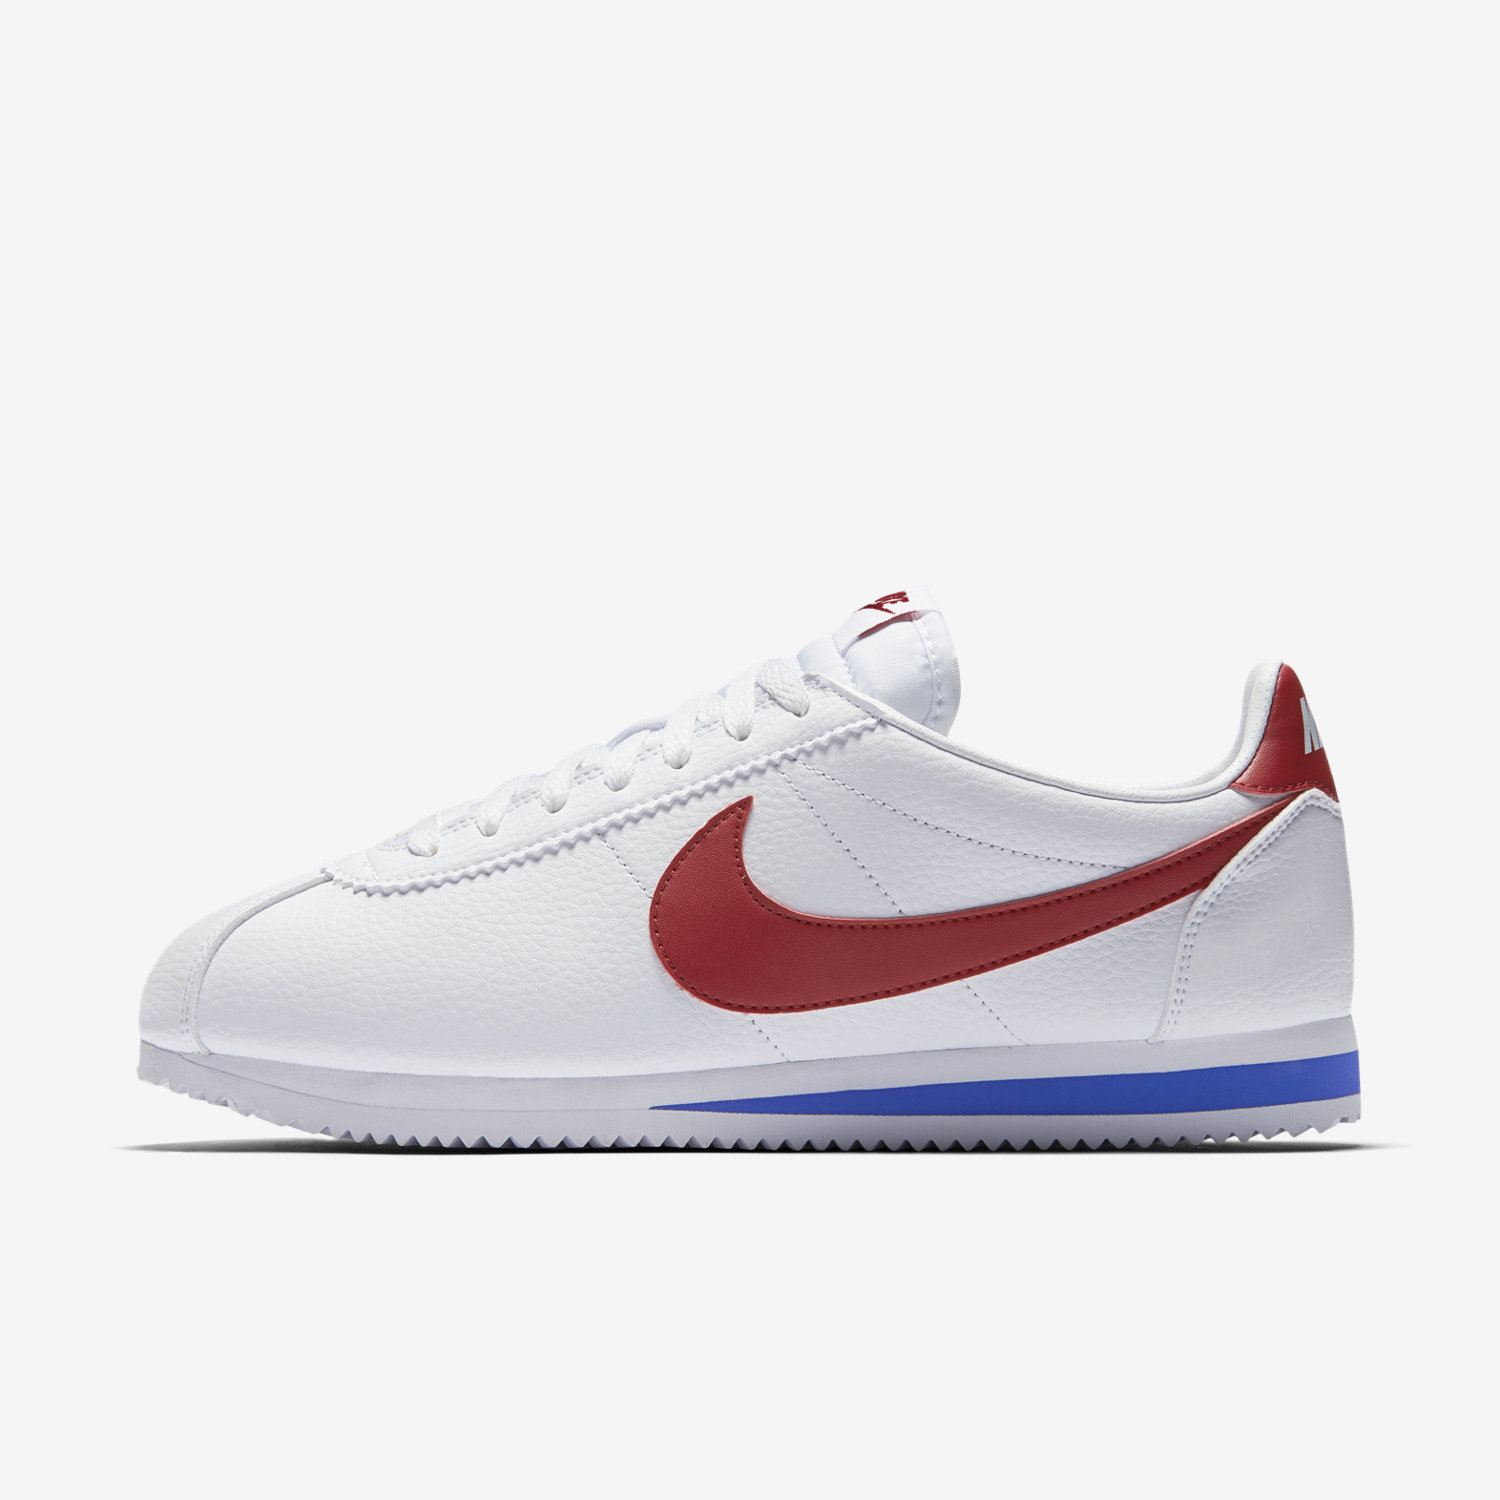 nike classic cortez white and navy leather trainers. Black Bedroom Furniture Sets. Home Design Ideas